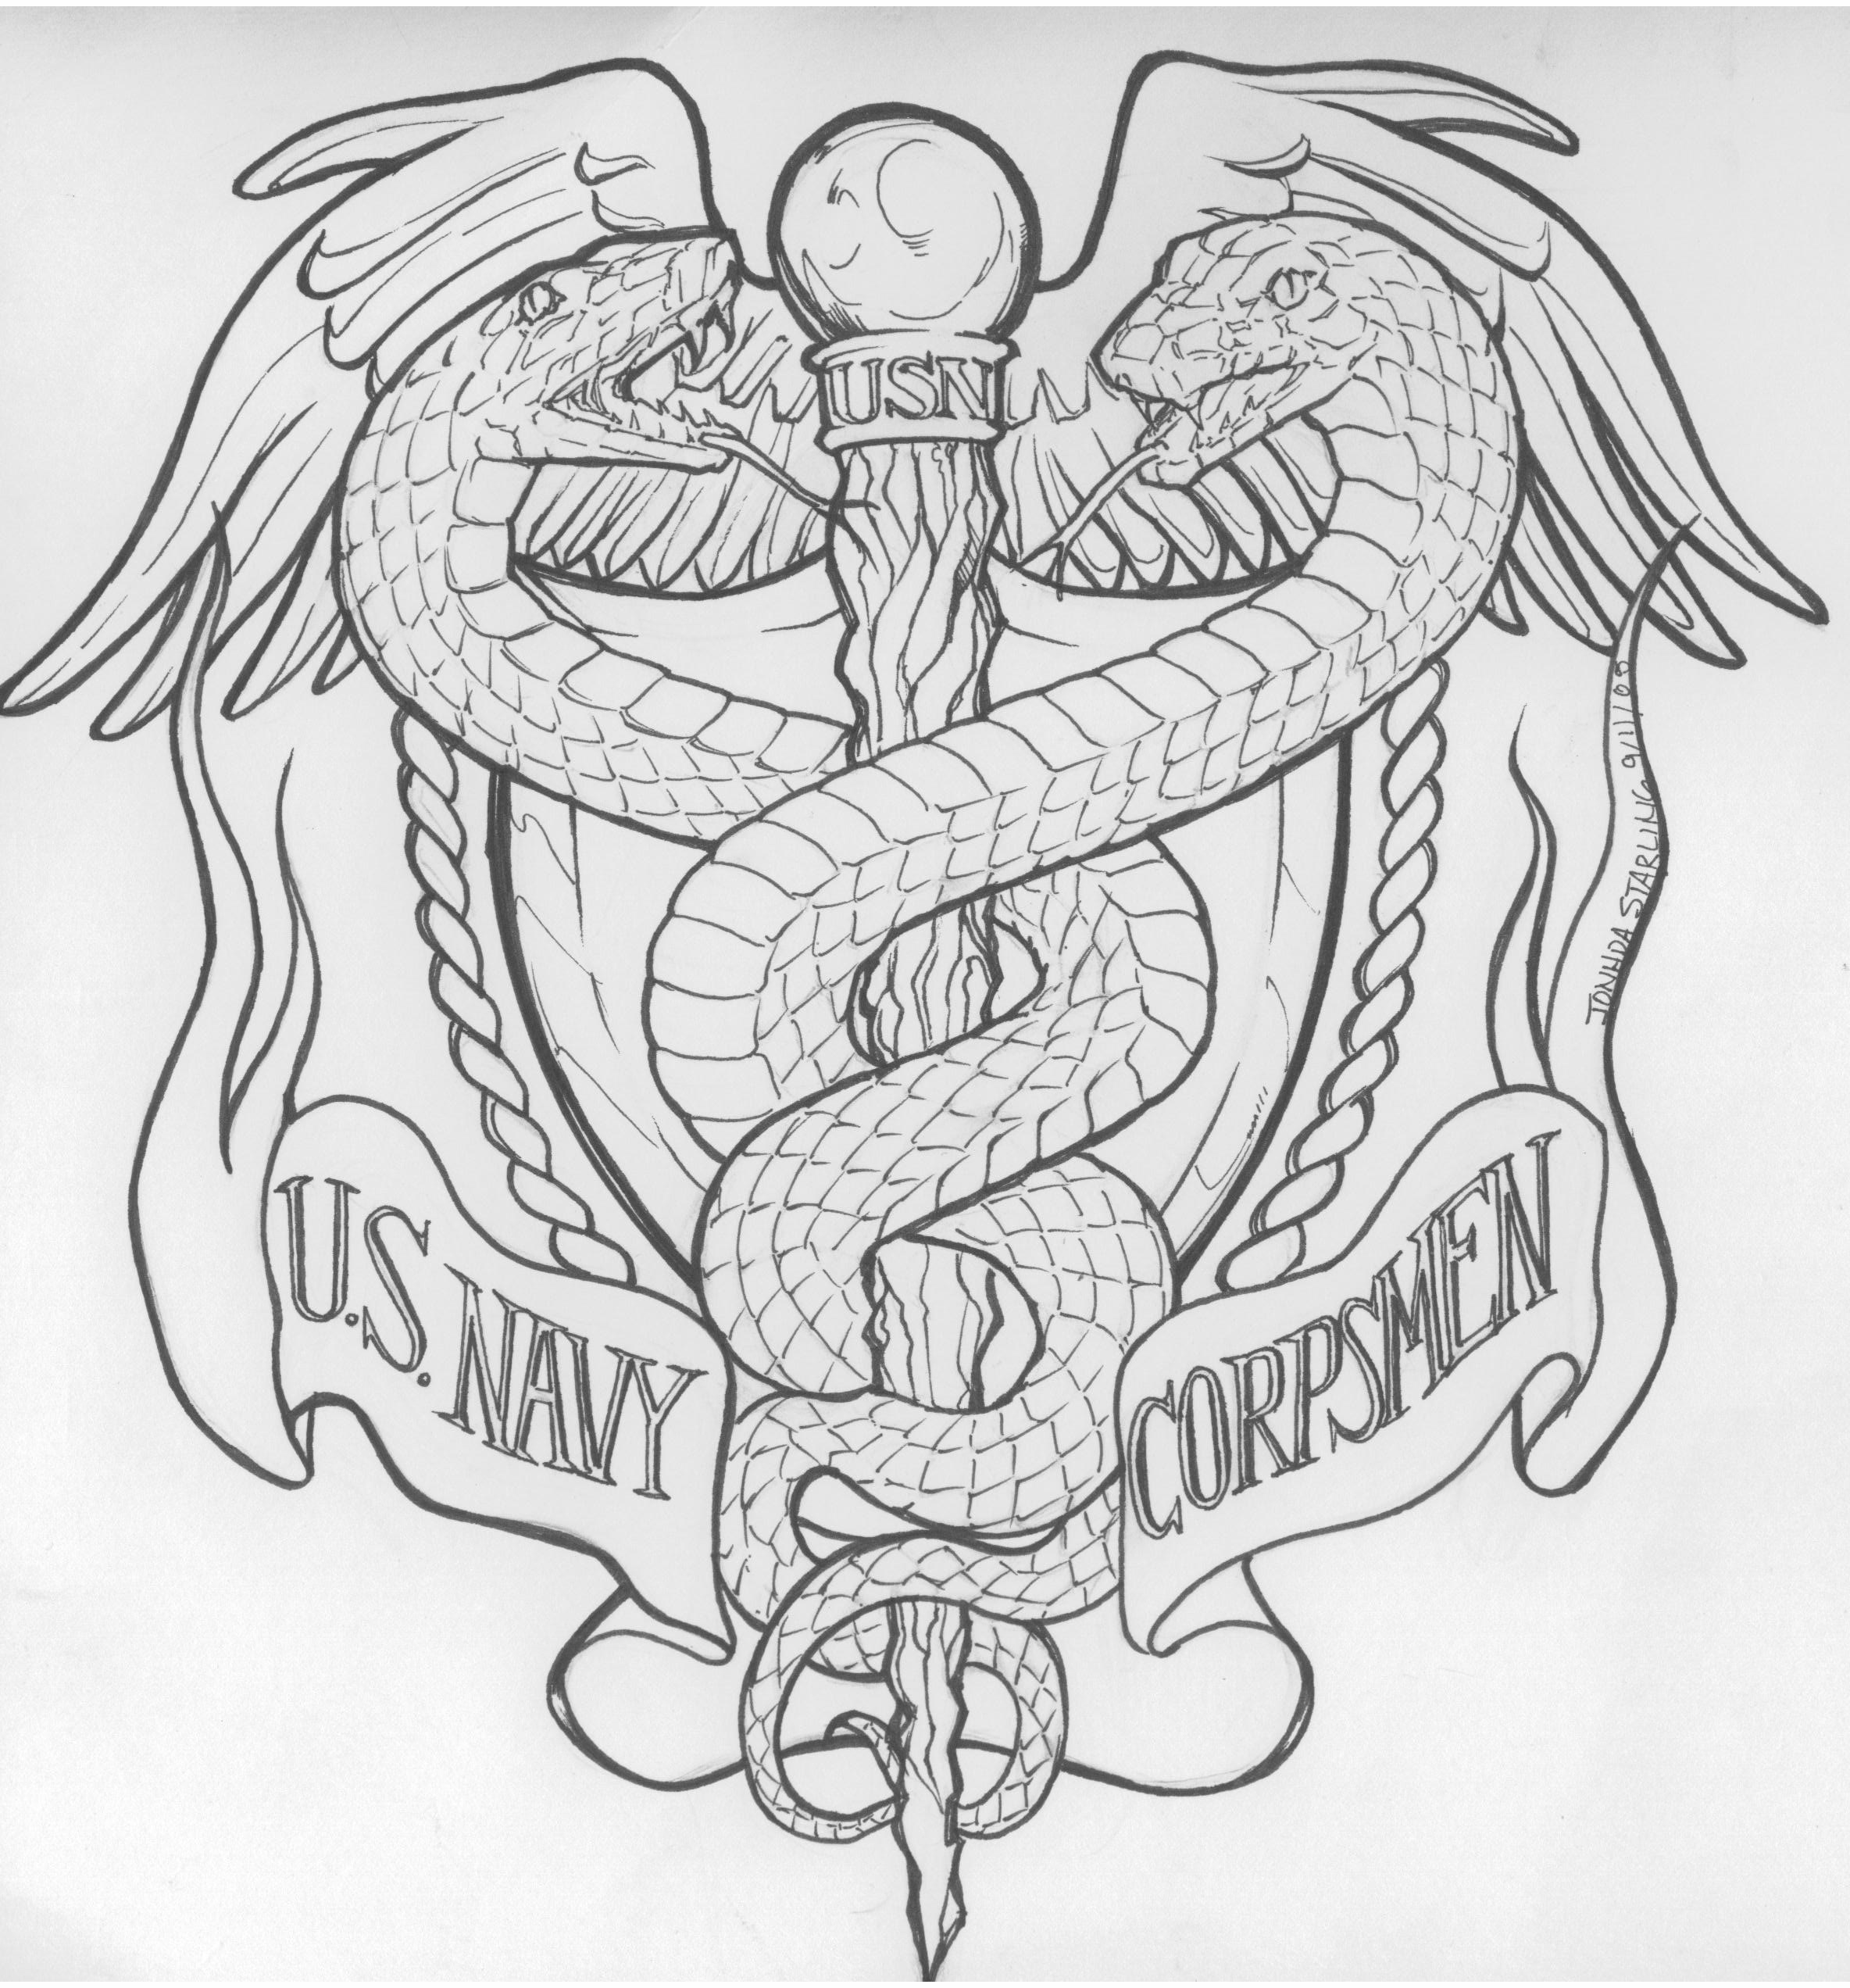 Navy Corpsman Tattoos.